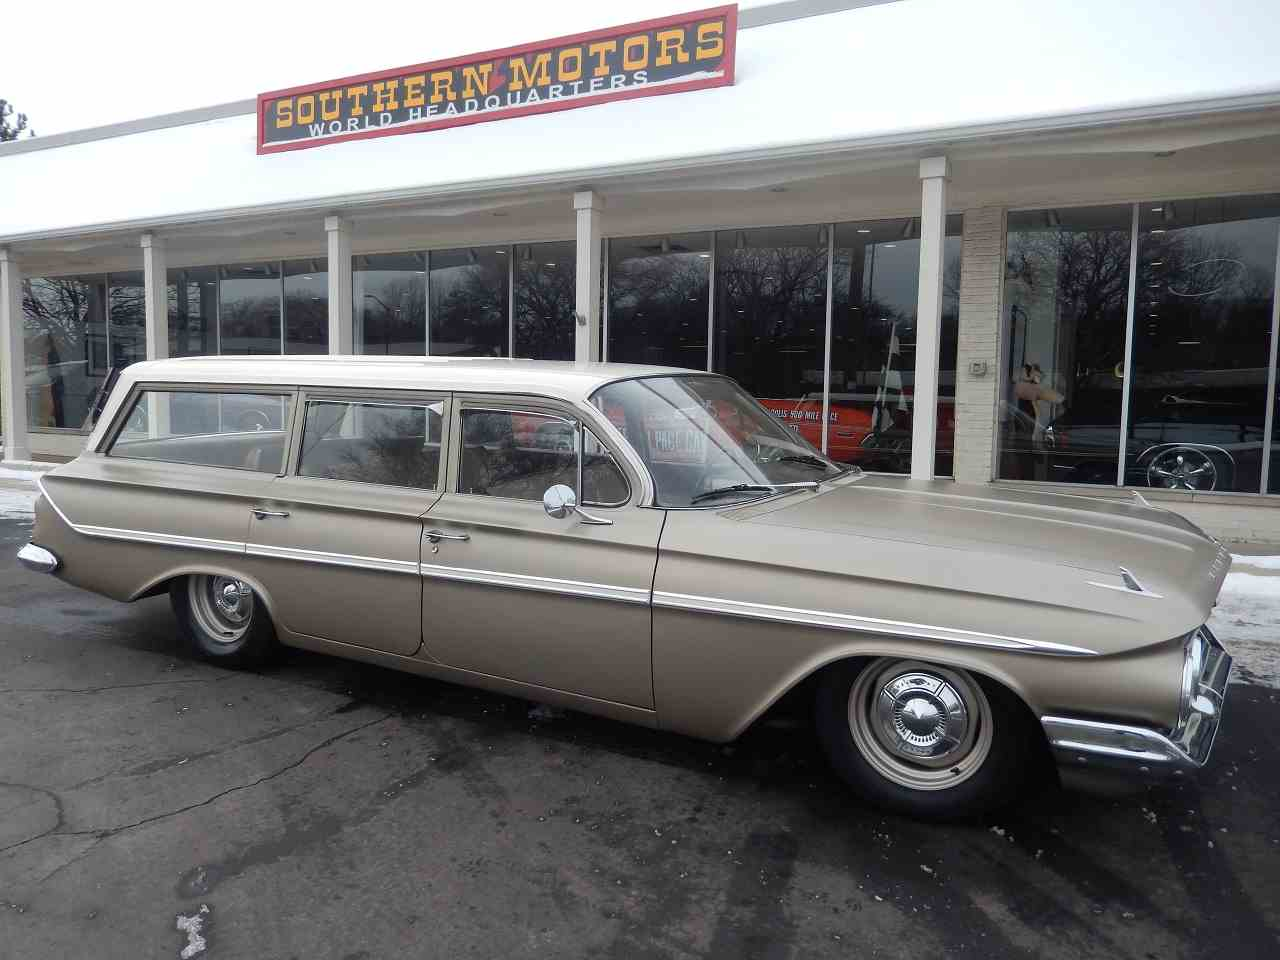 1961 Chevrolet Station Wagon for Sale | ClassicCars.com | CC-1064403